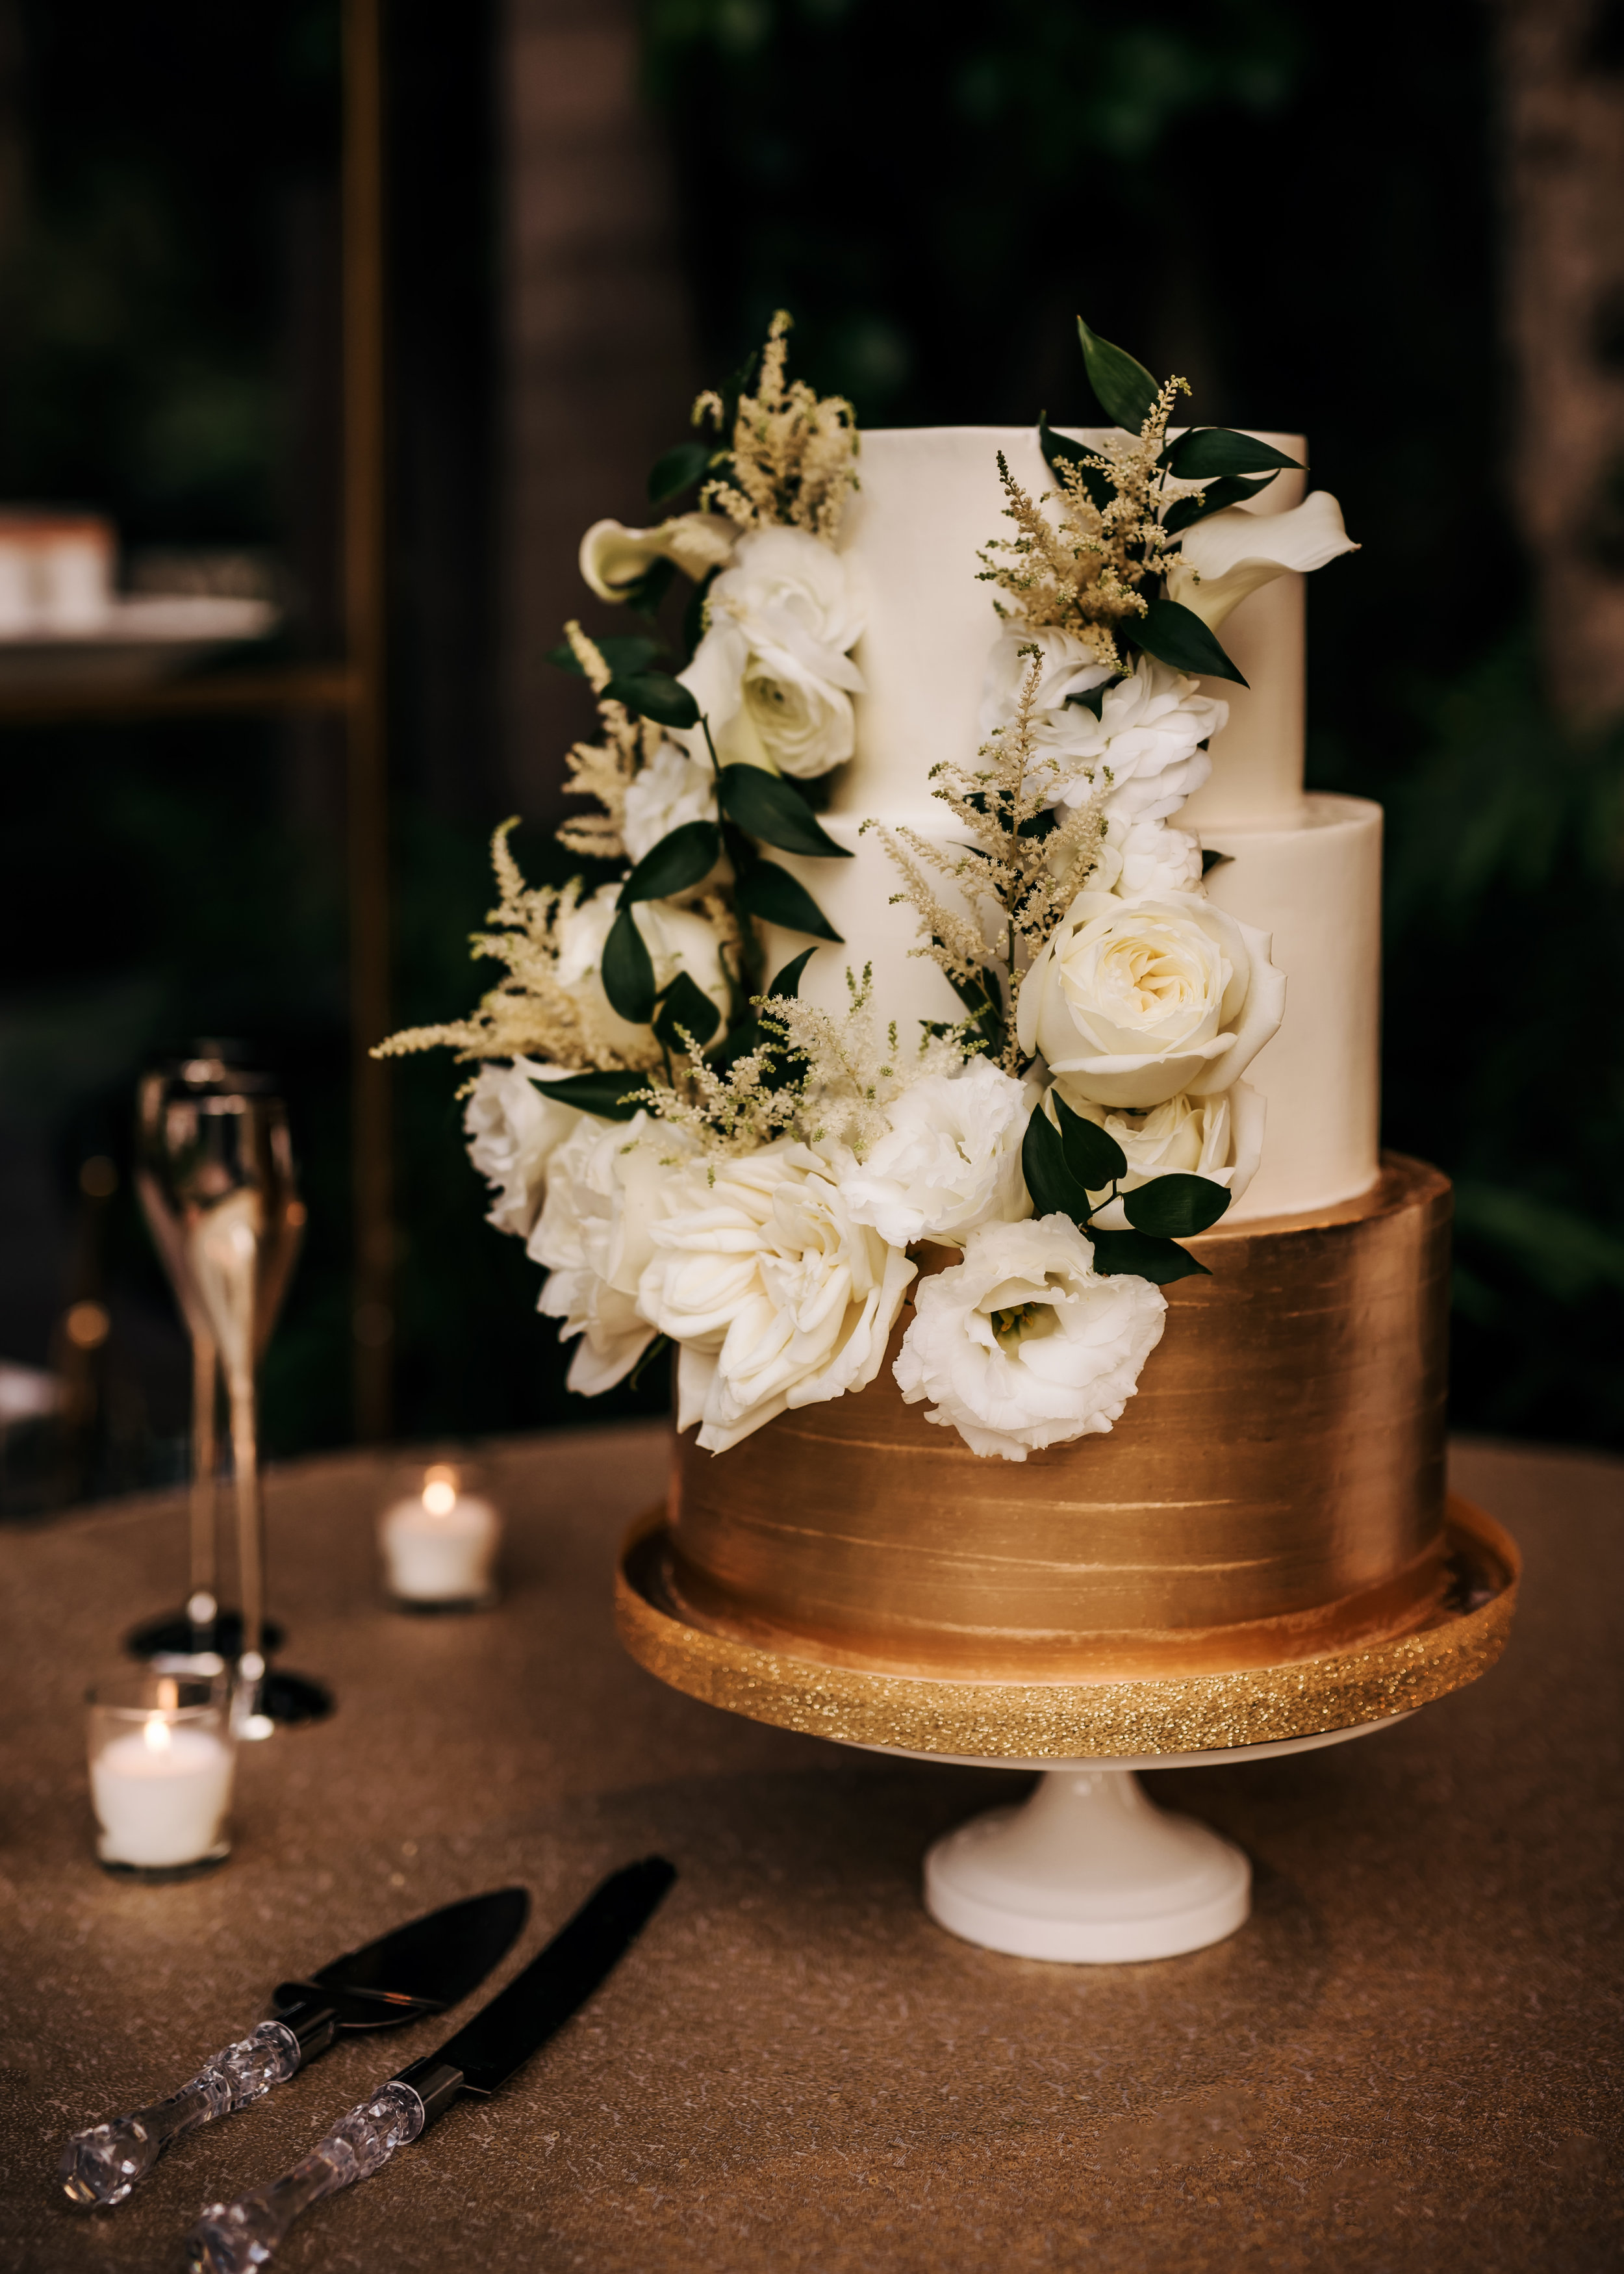 Turchin_20180825_Austinae-Brent-Wedding_449.jpg